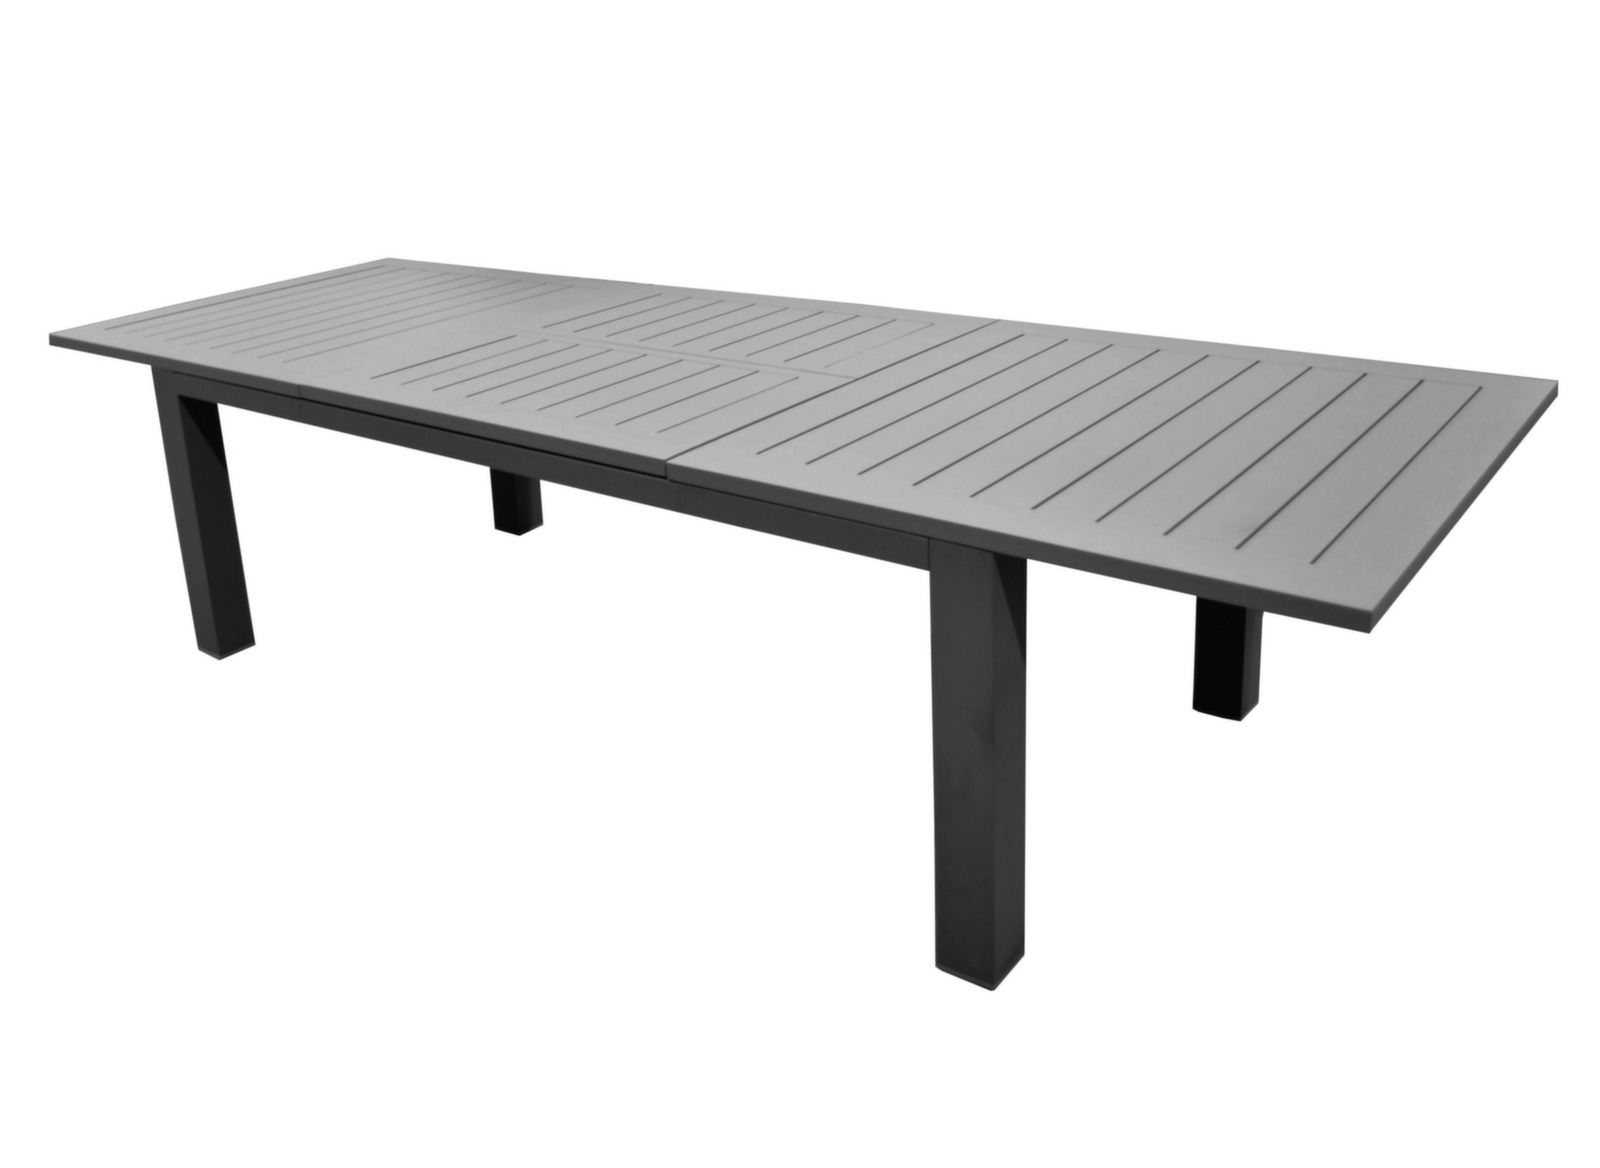 Table de jardin aluminium 12 places aurore oc o proloisirs for Table a rallonge 12 personnes